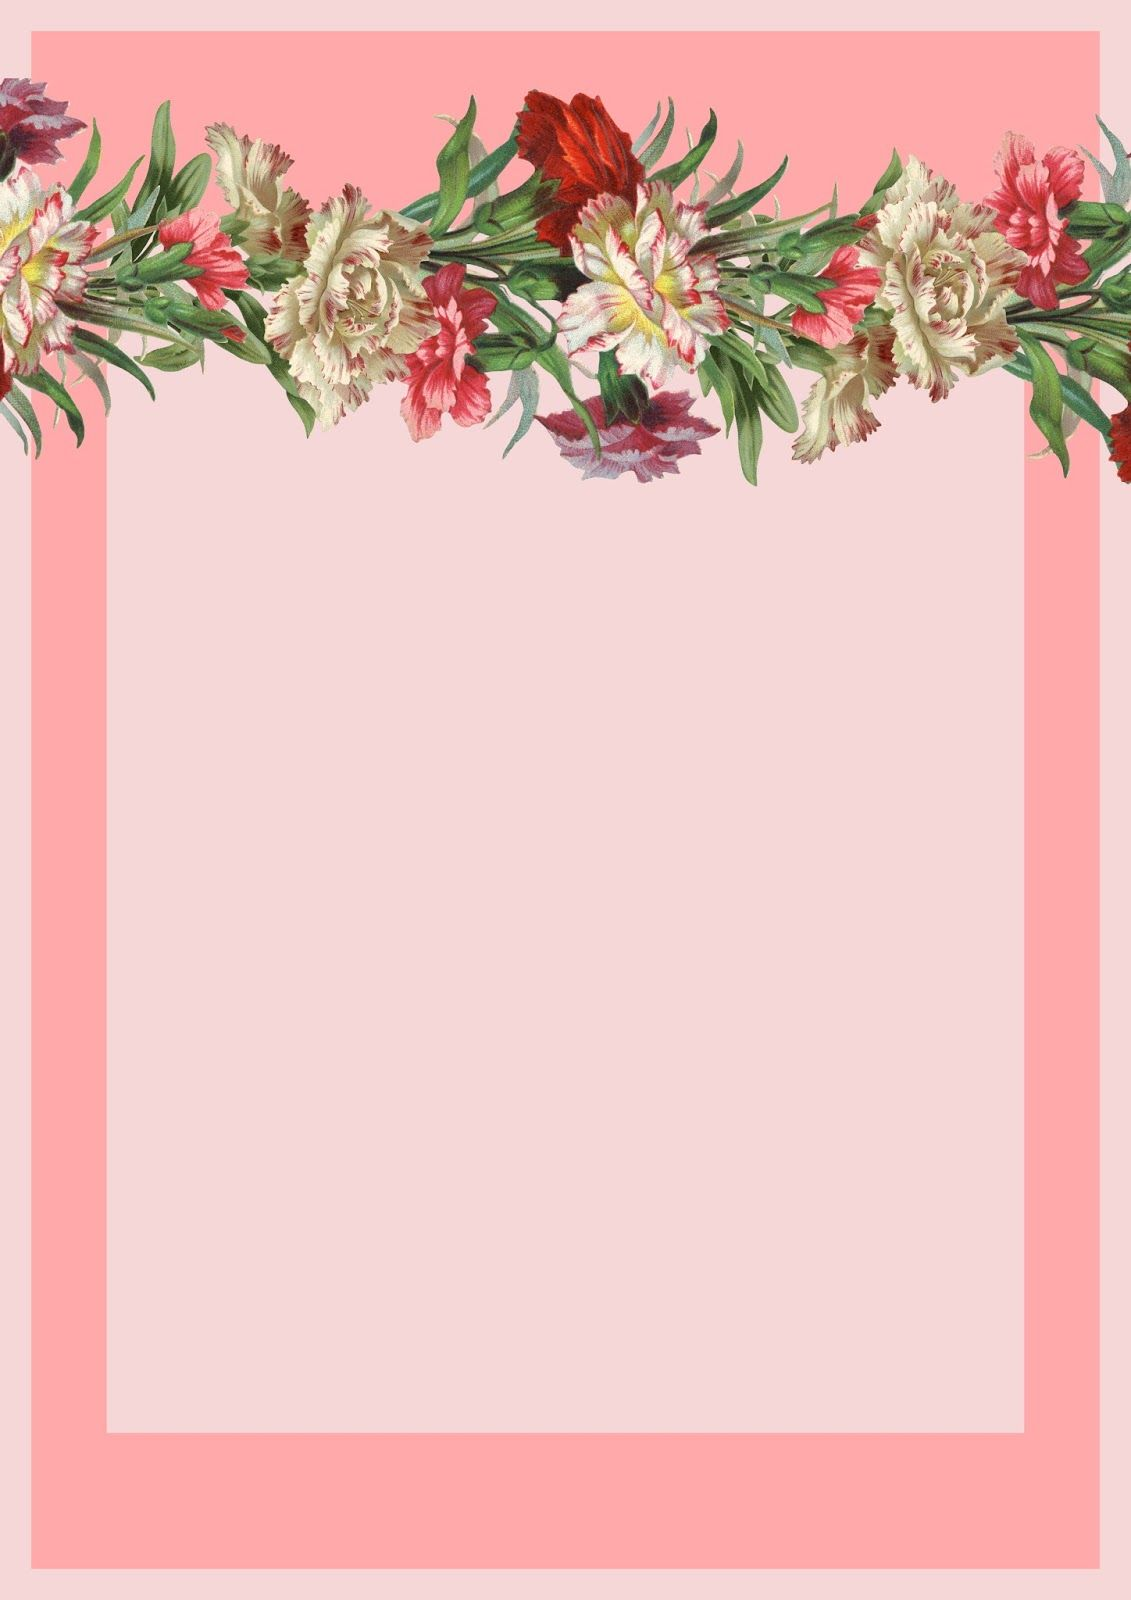 meinlilapark digital freebies print it out draw it pinterest free printable flower and. Black Bedroom Furniture Sets. Home Design Ideas